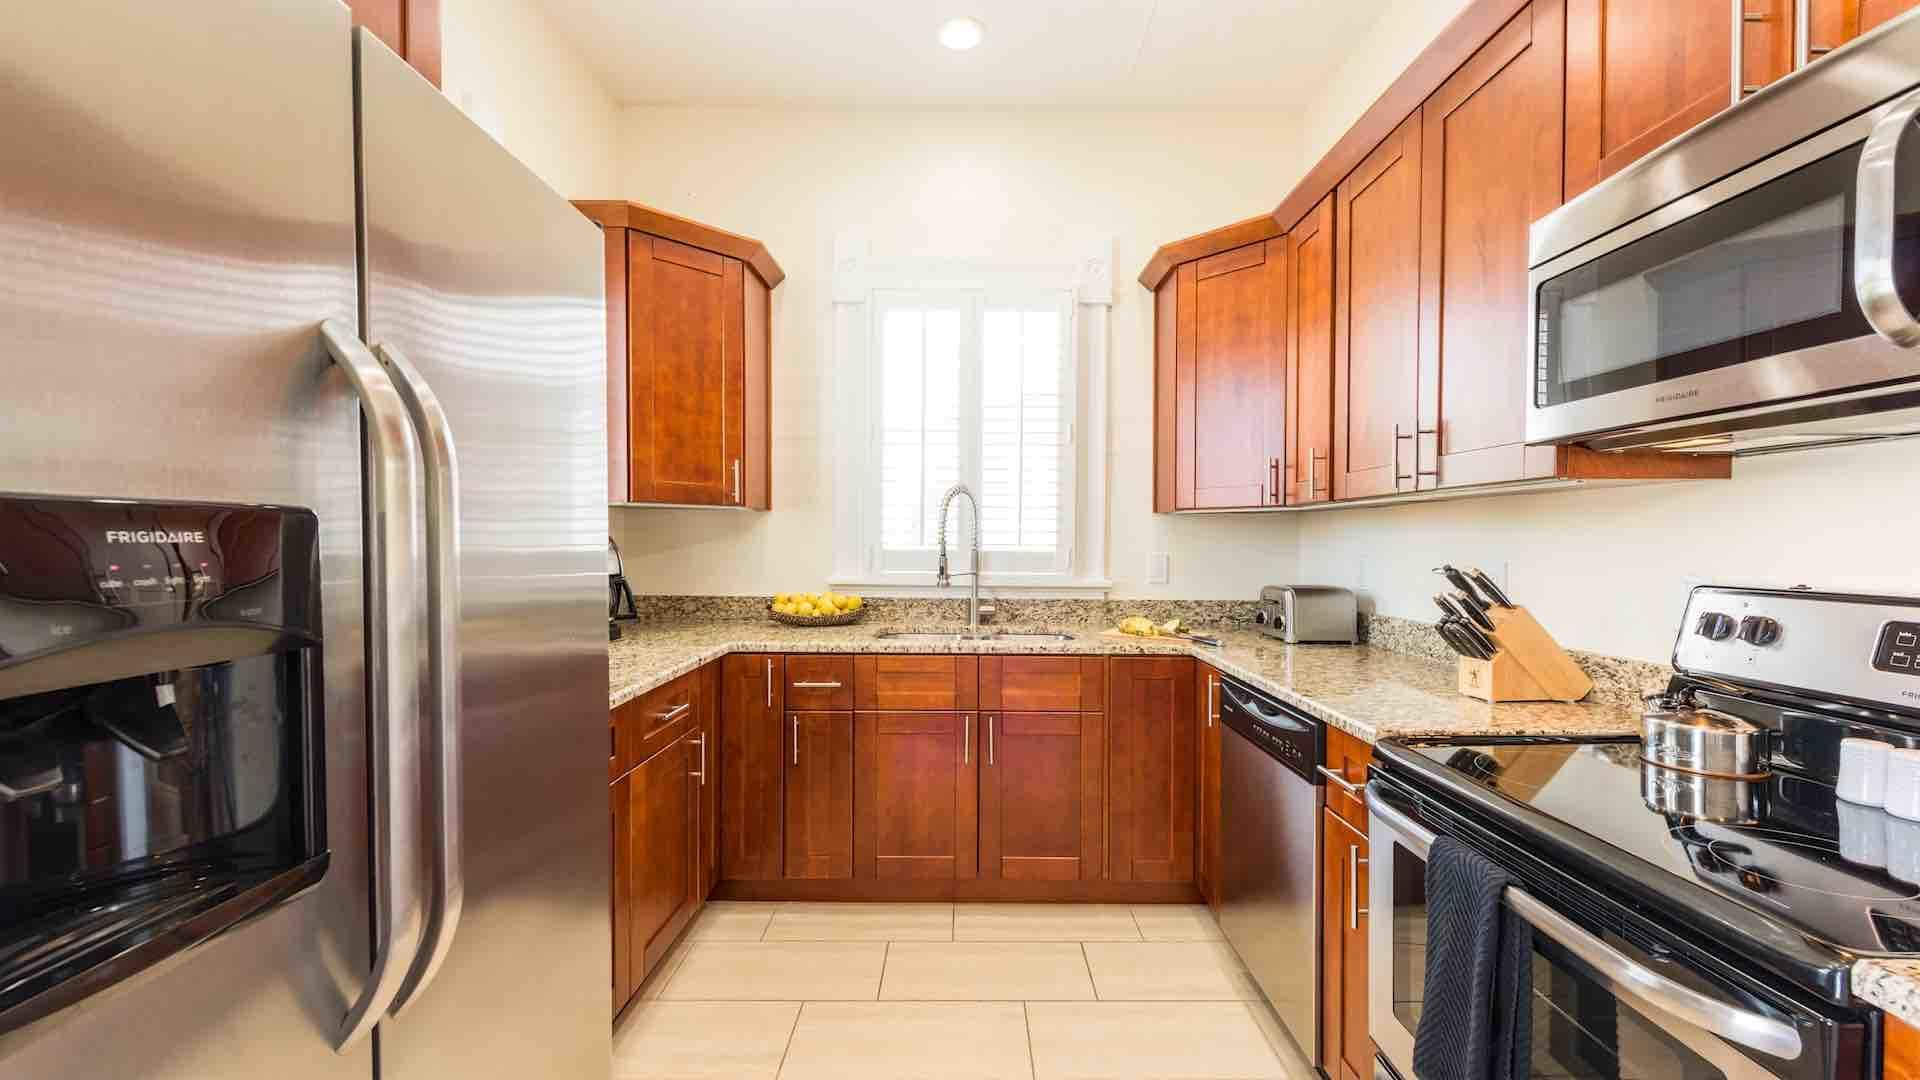 The upstairs condo has a fully equipped kitchen, with stainless steel appliances...